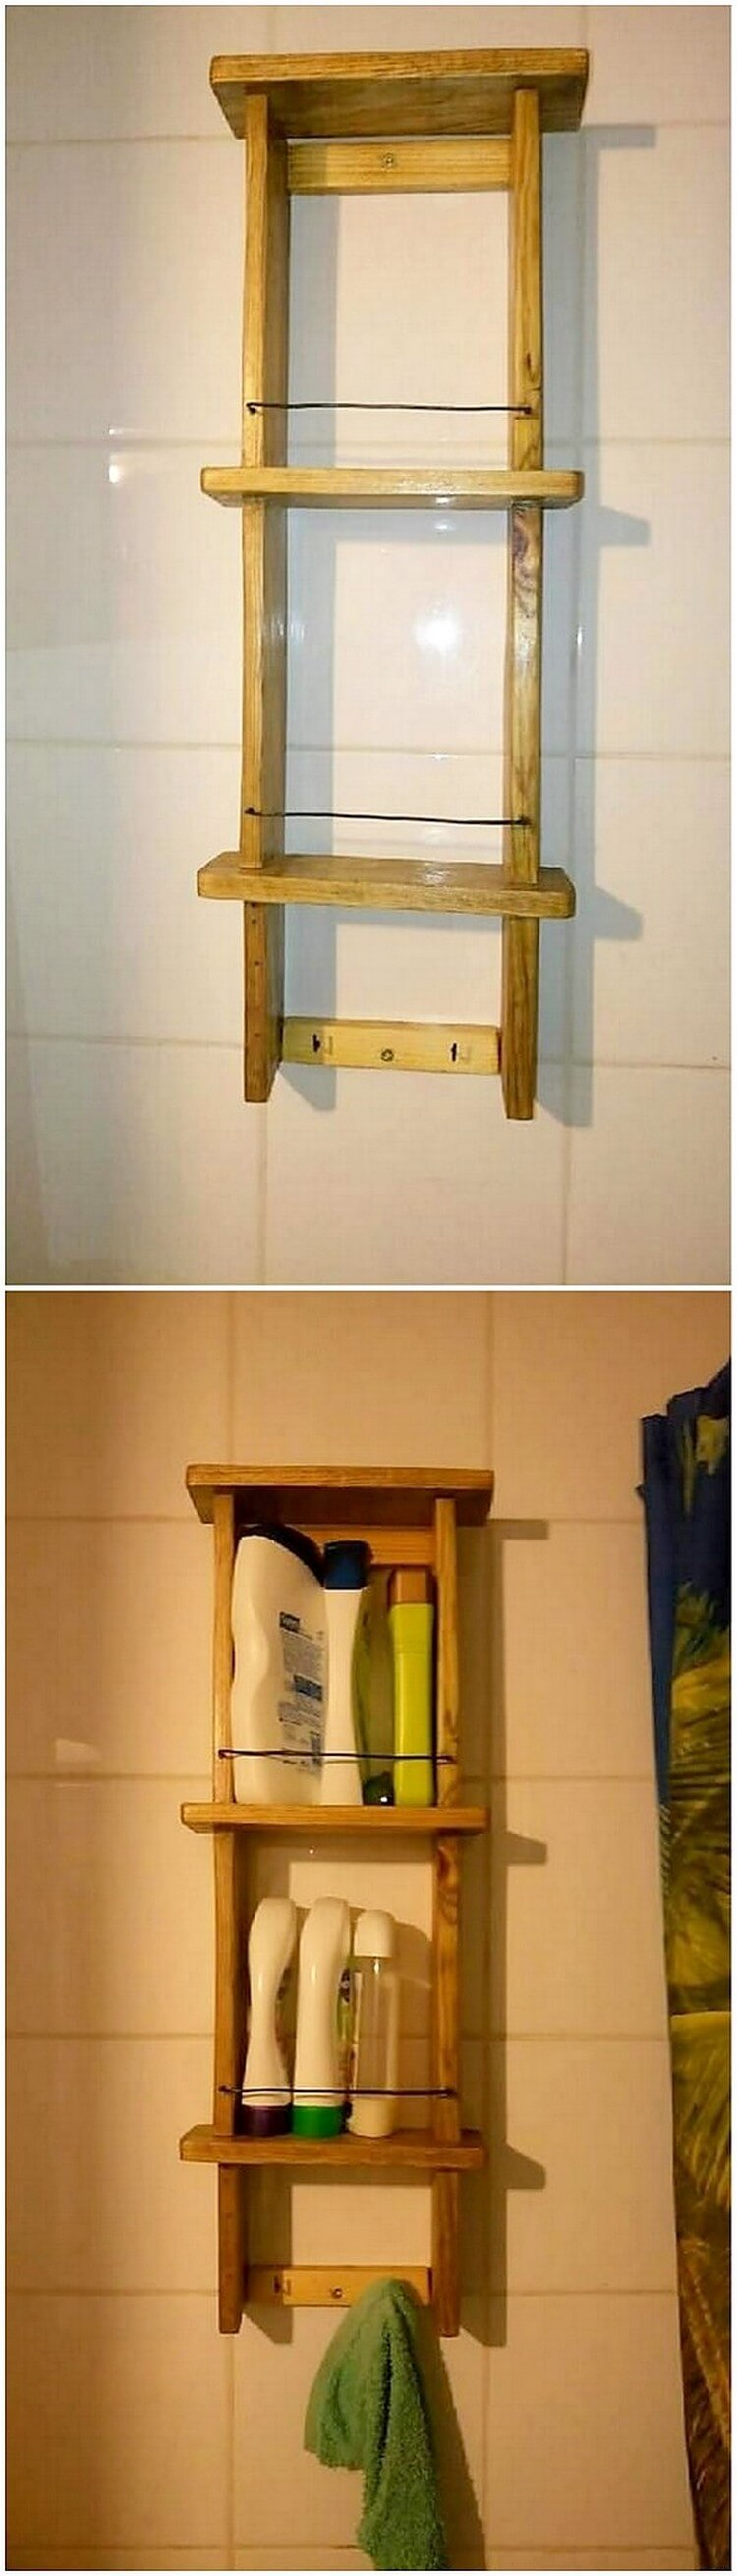 Pallet Bathroom Wall Shelf